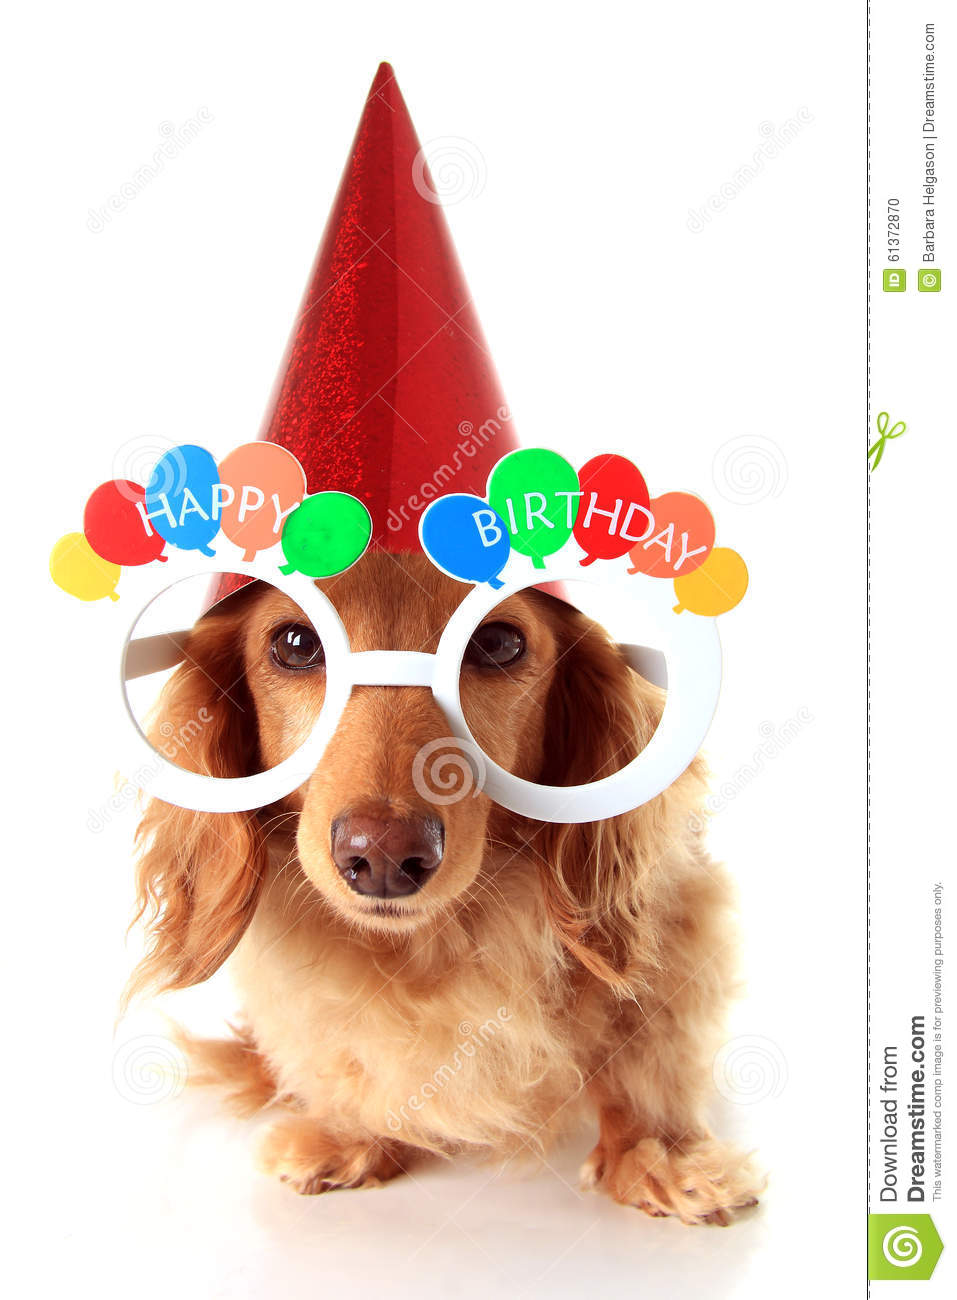 birthday dogs images happy birthday dog stock photo image of happy festive 3518